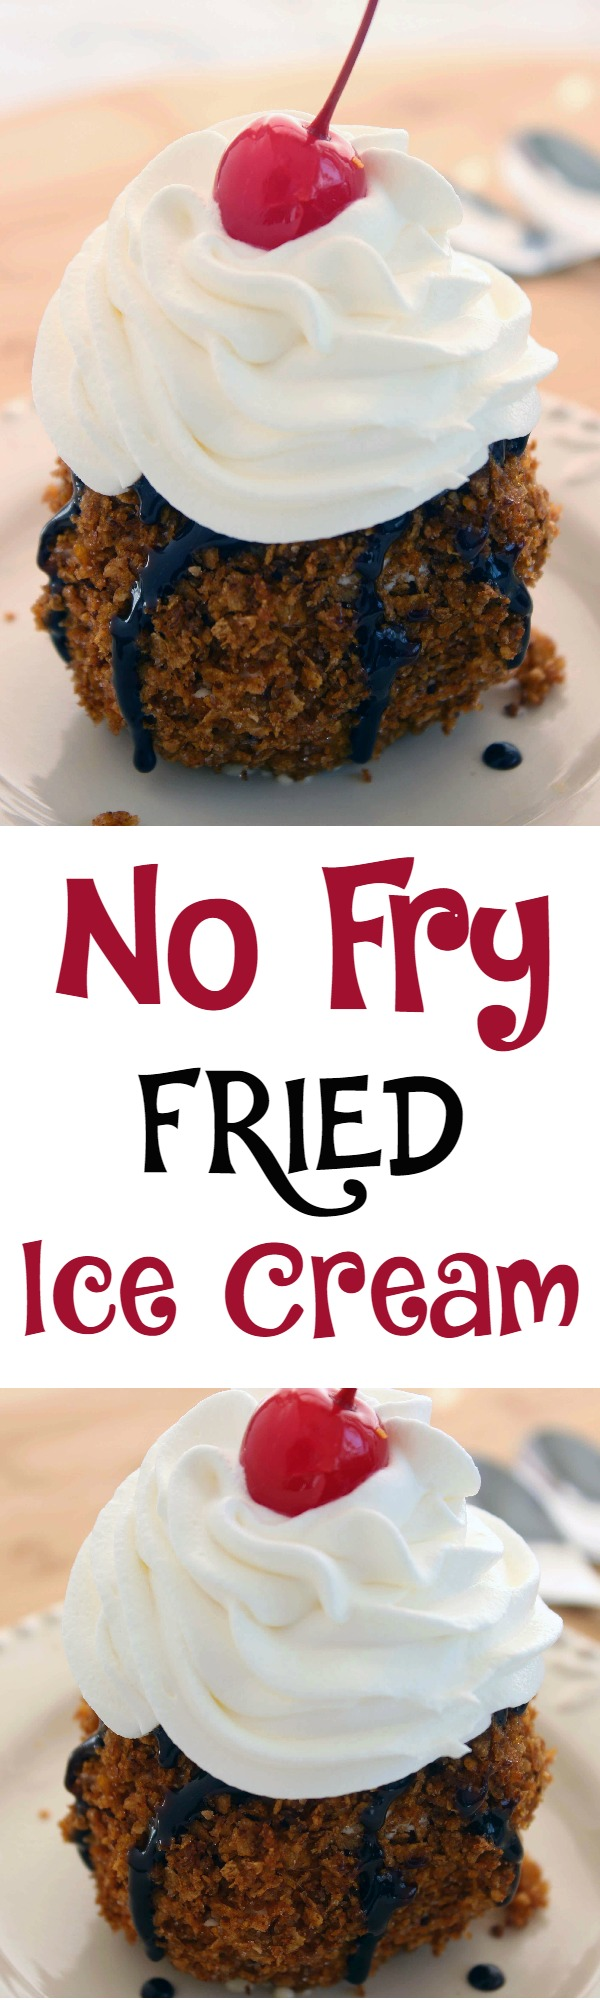 No Fry Fried Ice Cream Dessert